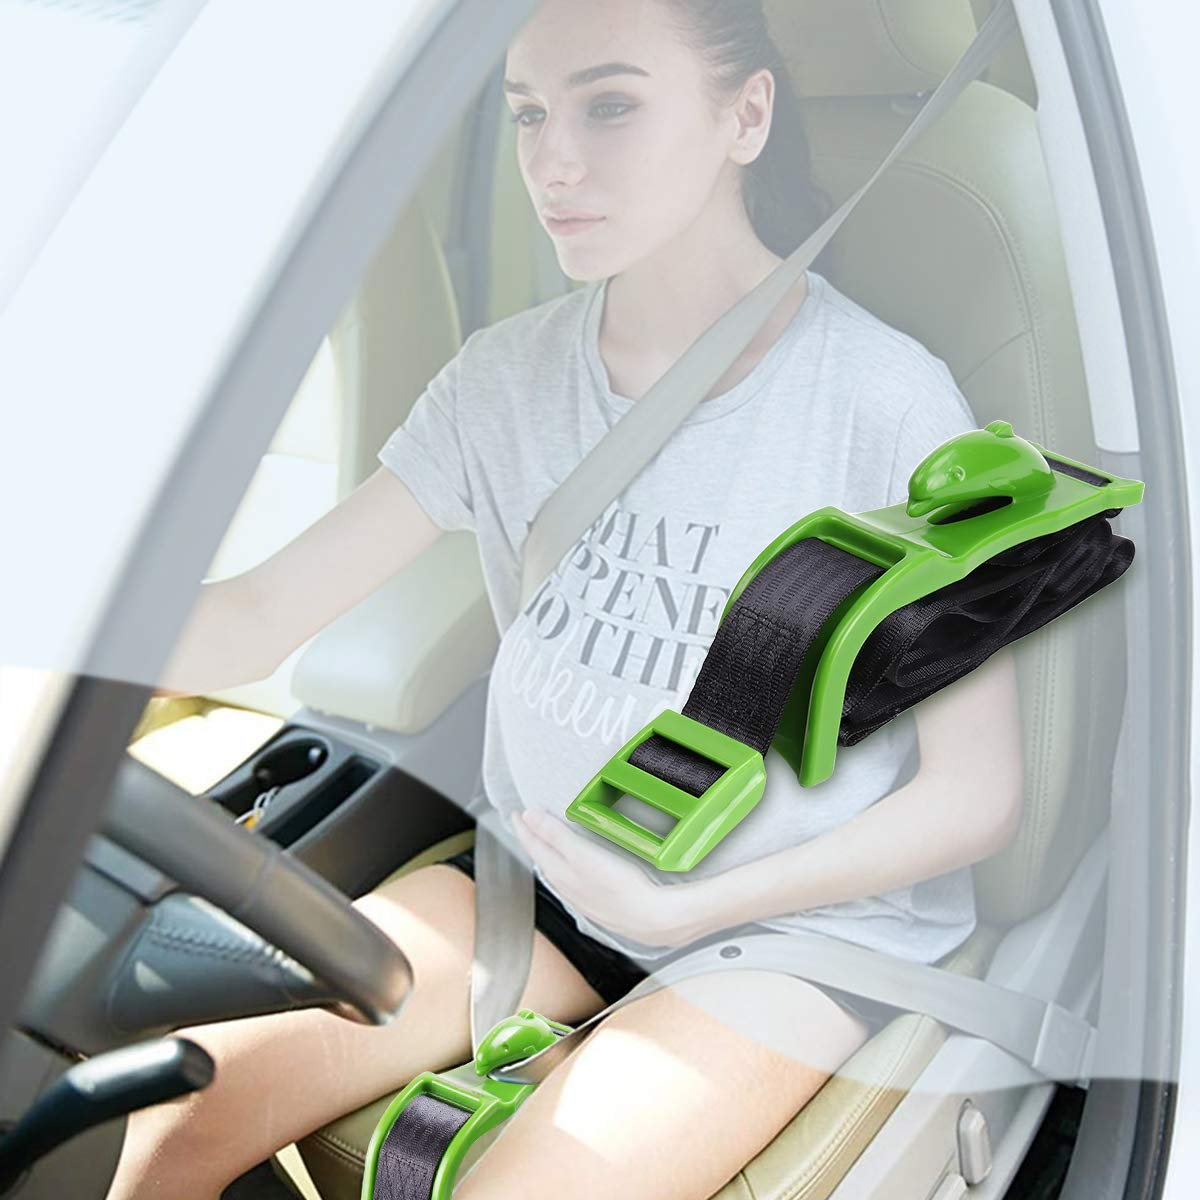 wjieyou Pregnancy Seat Belt Adjuster Baby Bump Belt Maternity Car Seat Belt Adjuster Dolphin Hook Comfort Safety for Pregnant Driving Mom,Protect Unborn Baby